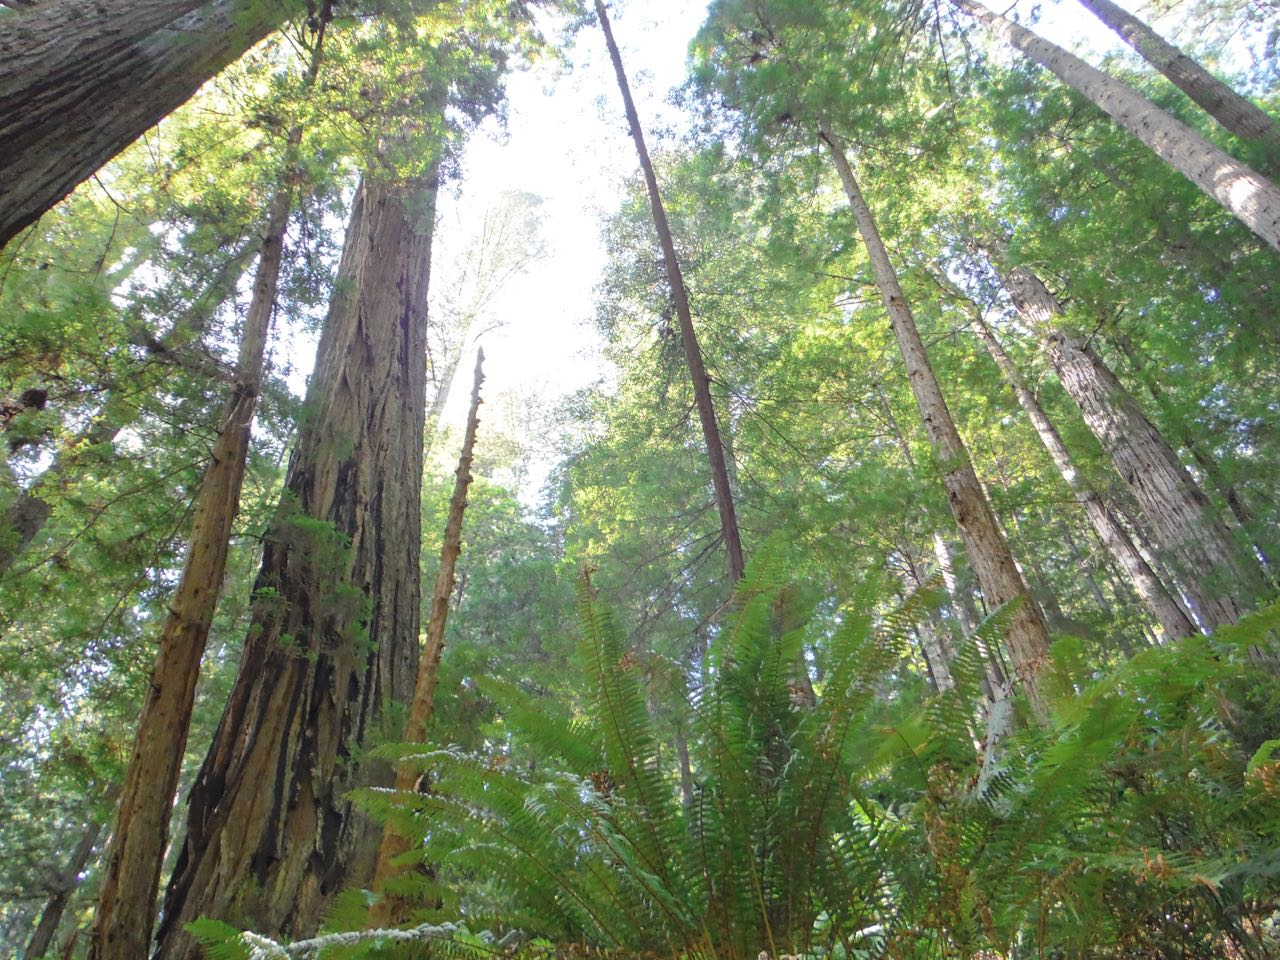 Redwoods 2017 10 08 263 Of 287